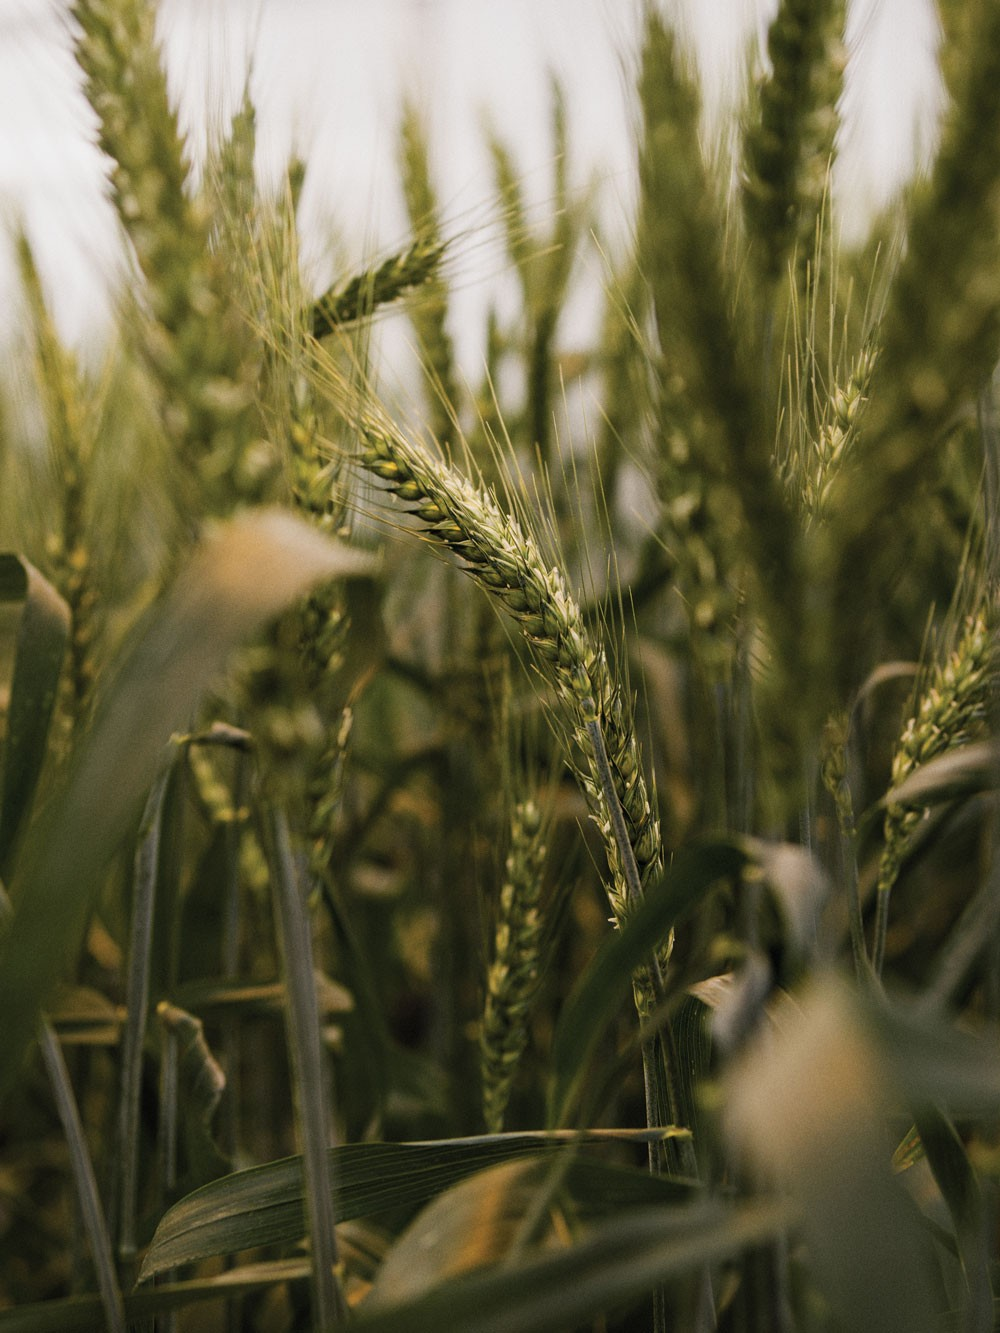 These Are Not Your Father's GMOs